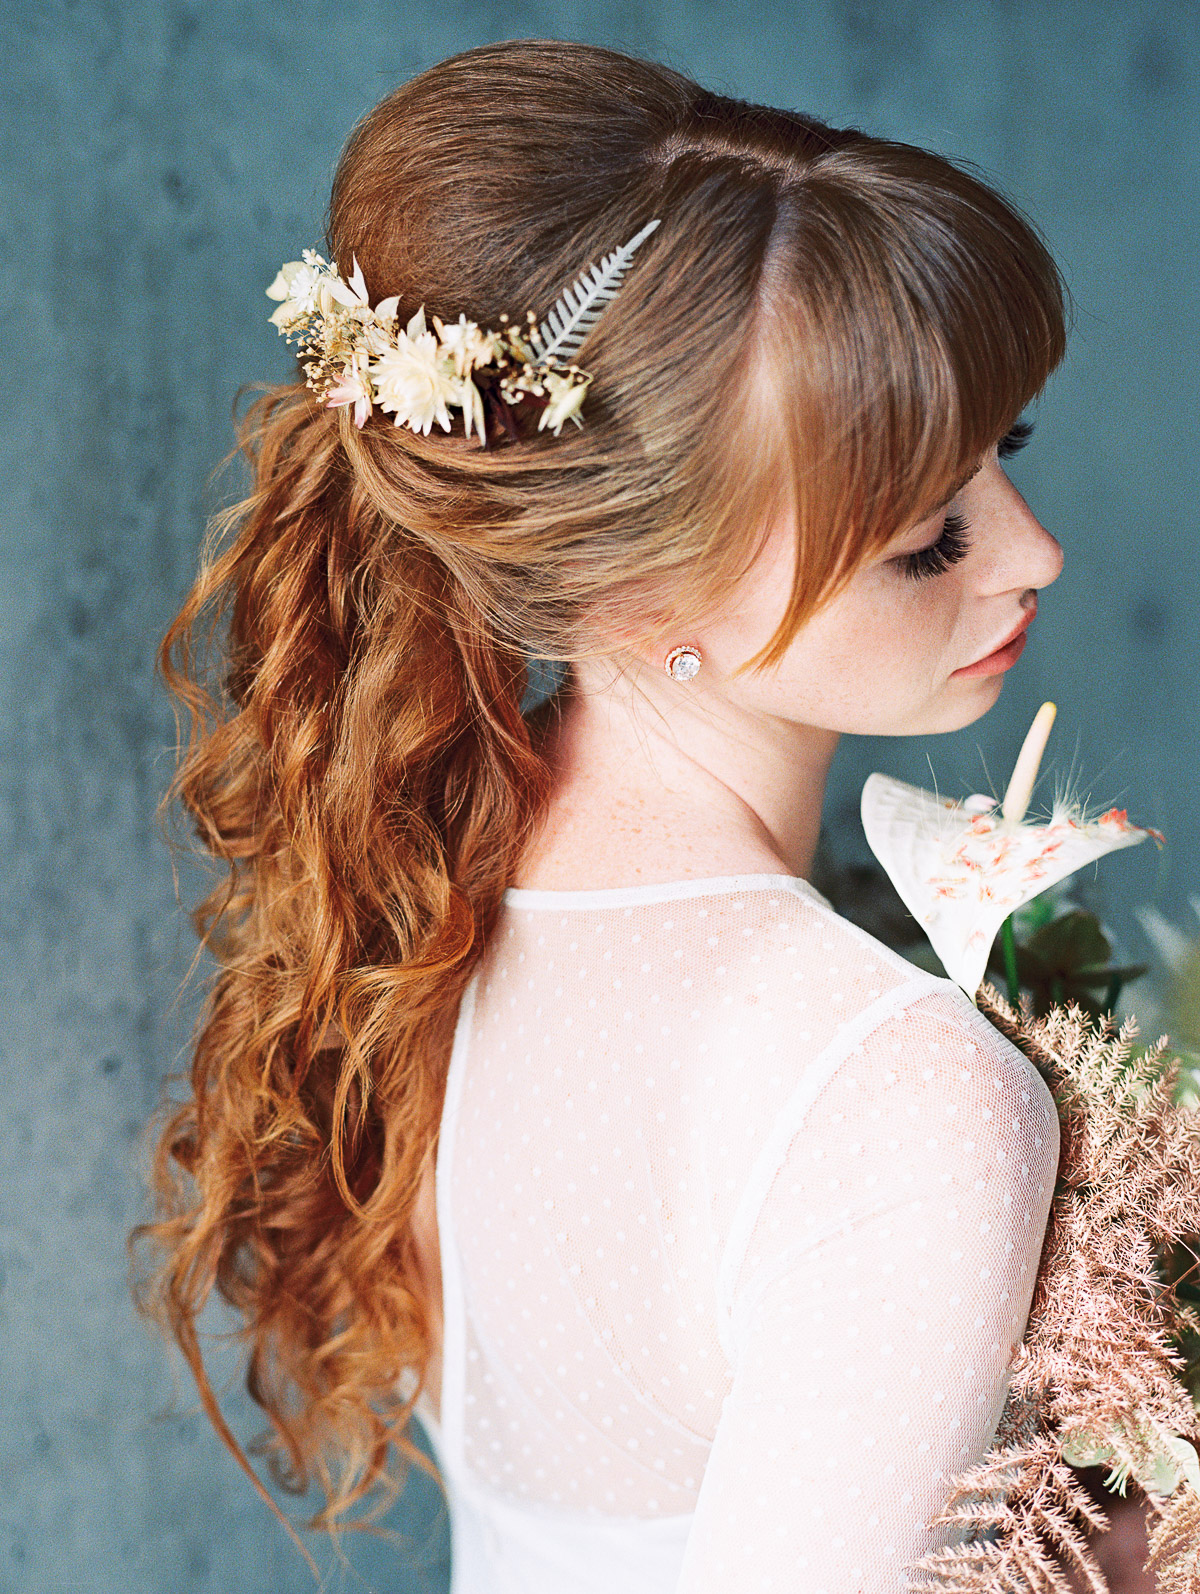 Detail shot of redhead brides winter updo, adorned with dried florals